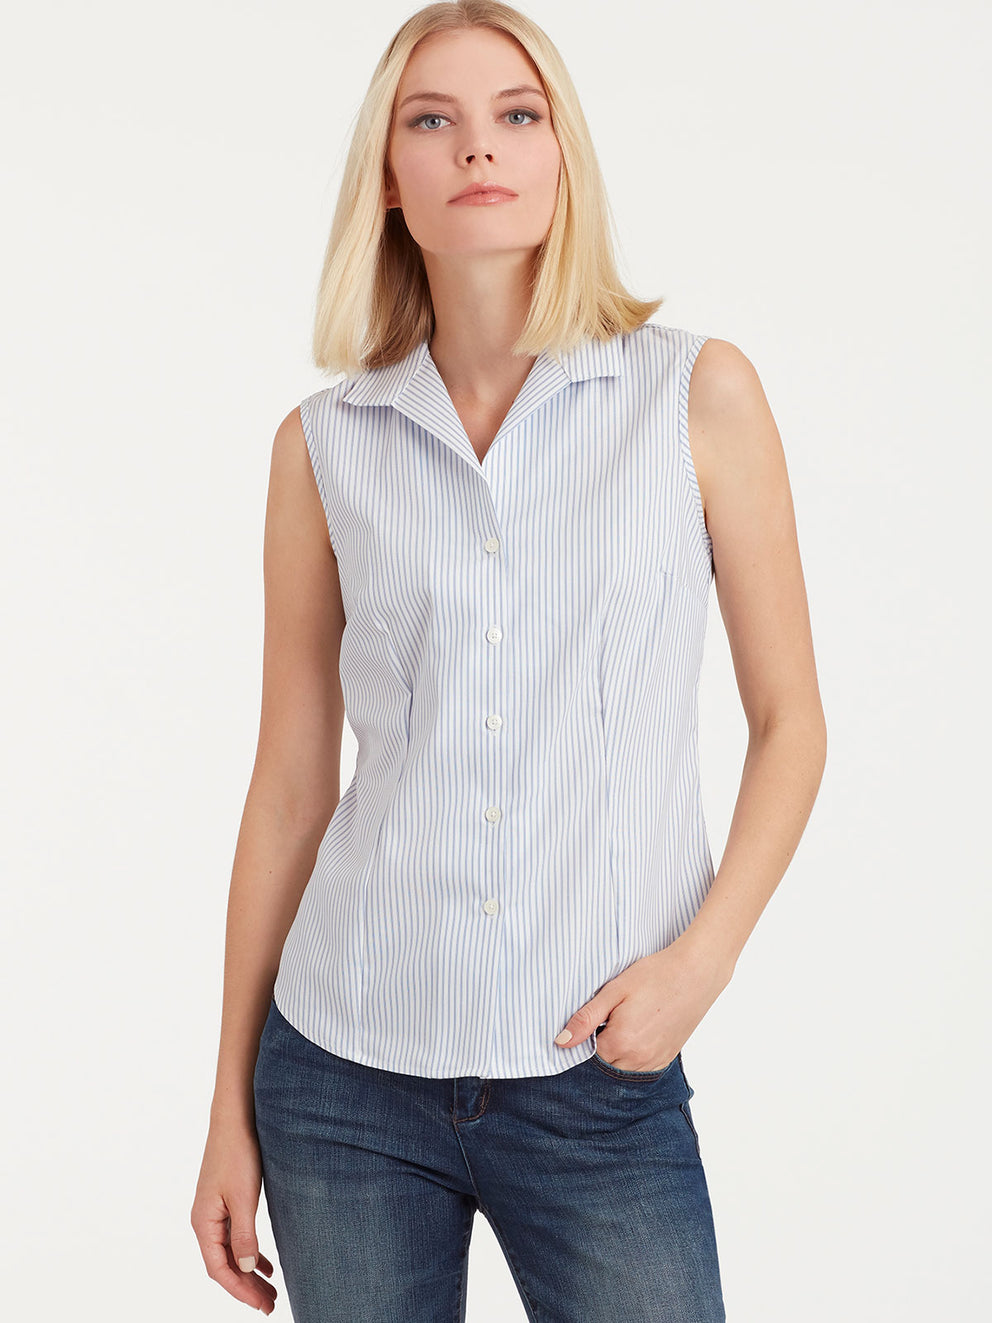 The Jones New York Striped Non-Iron Sleeveless Shirt in color Indigo Combo - Image Position 2